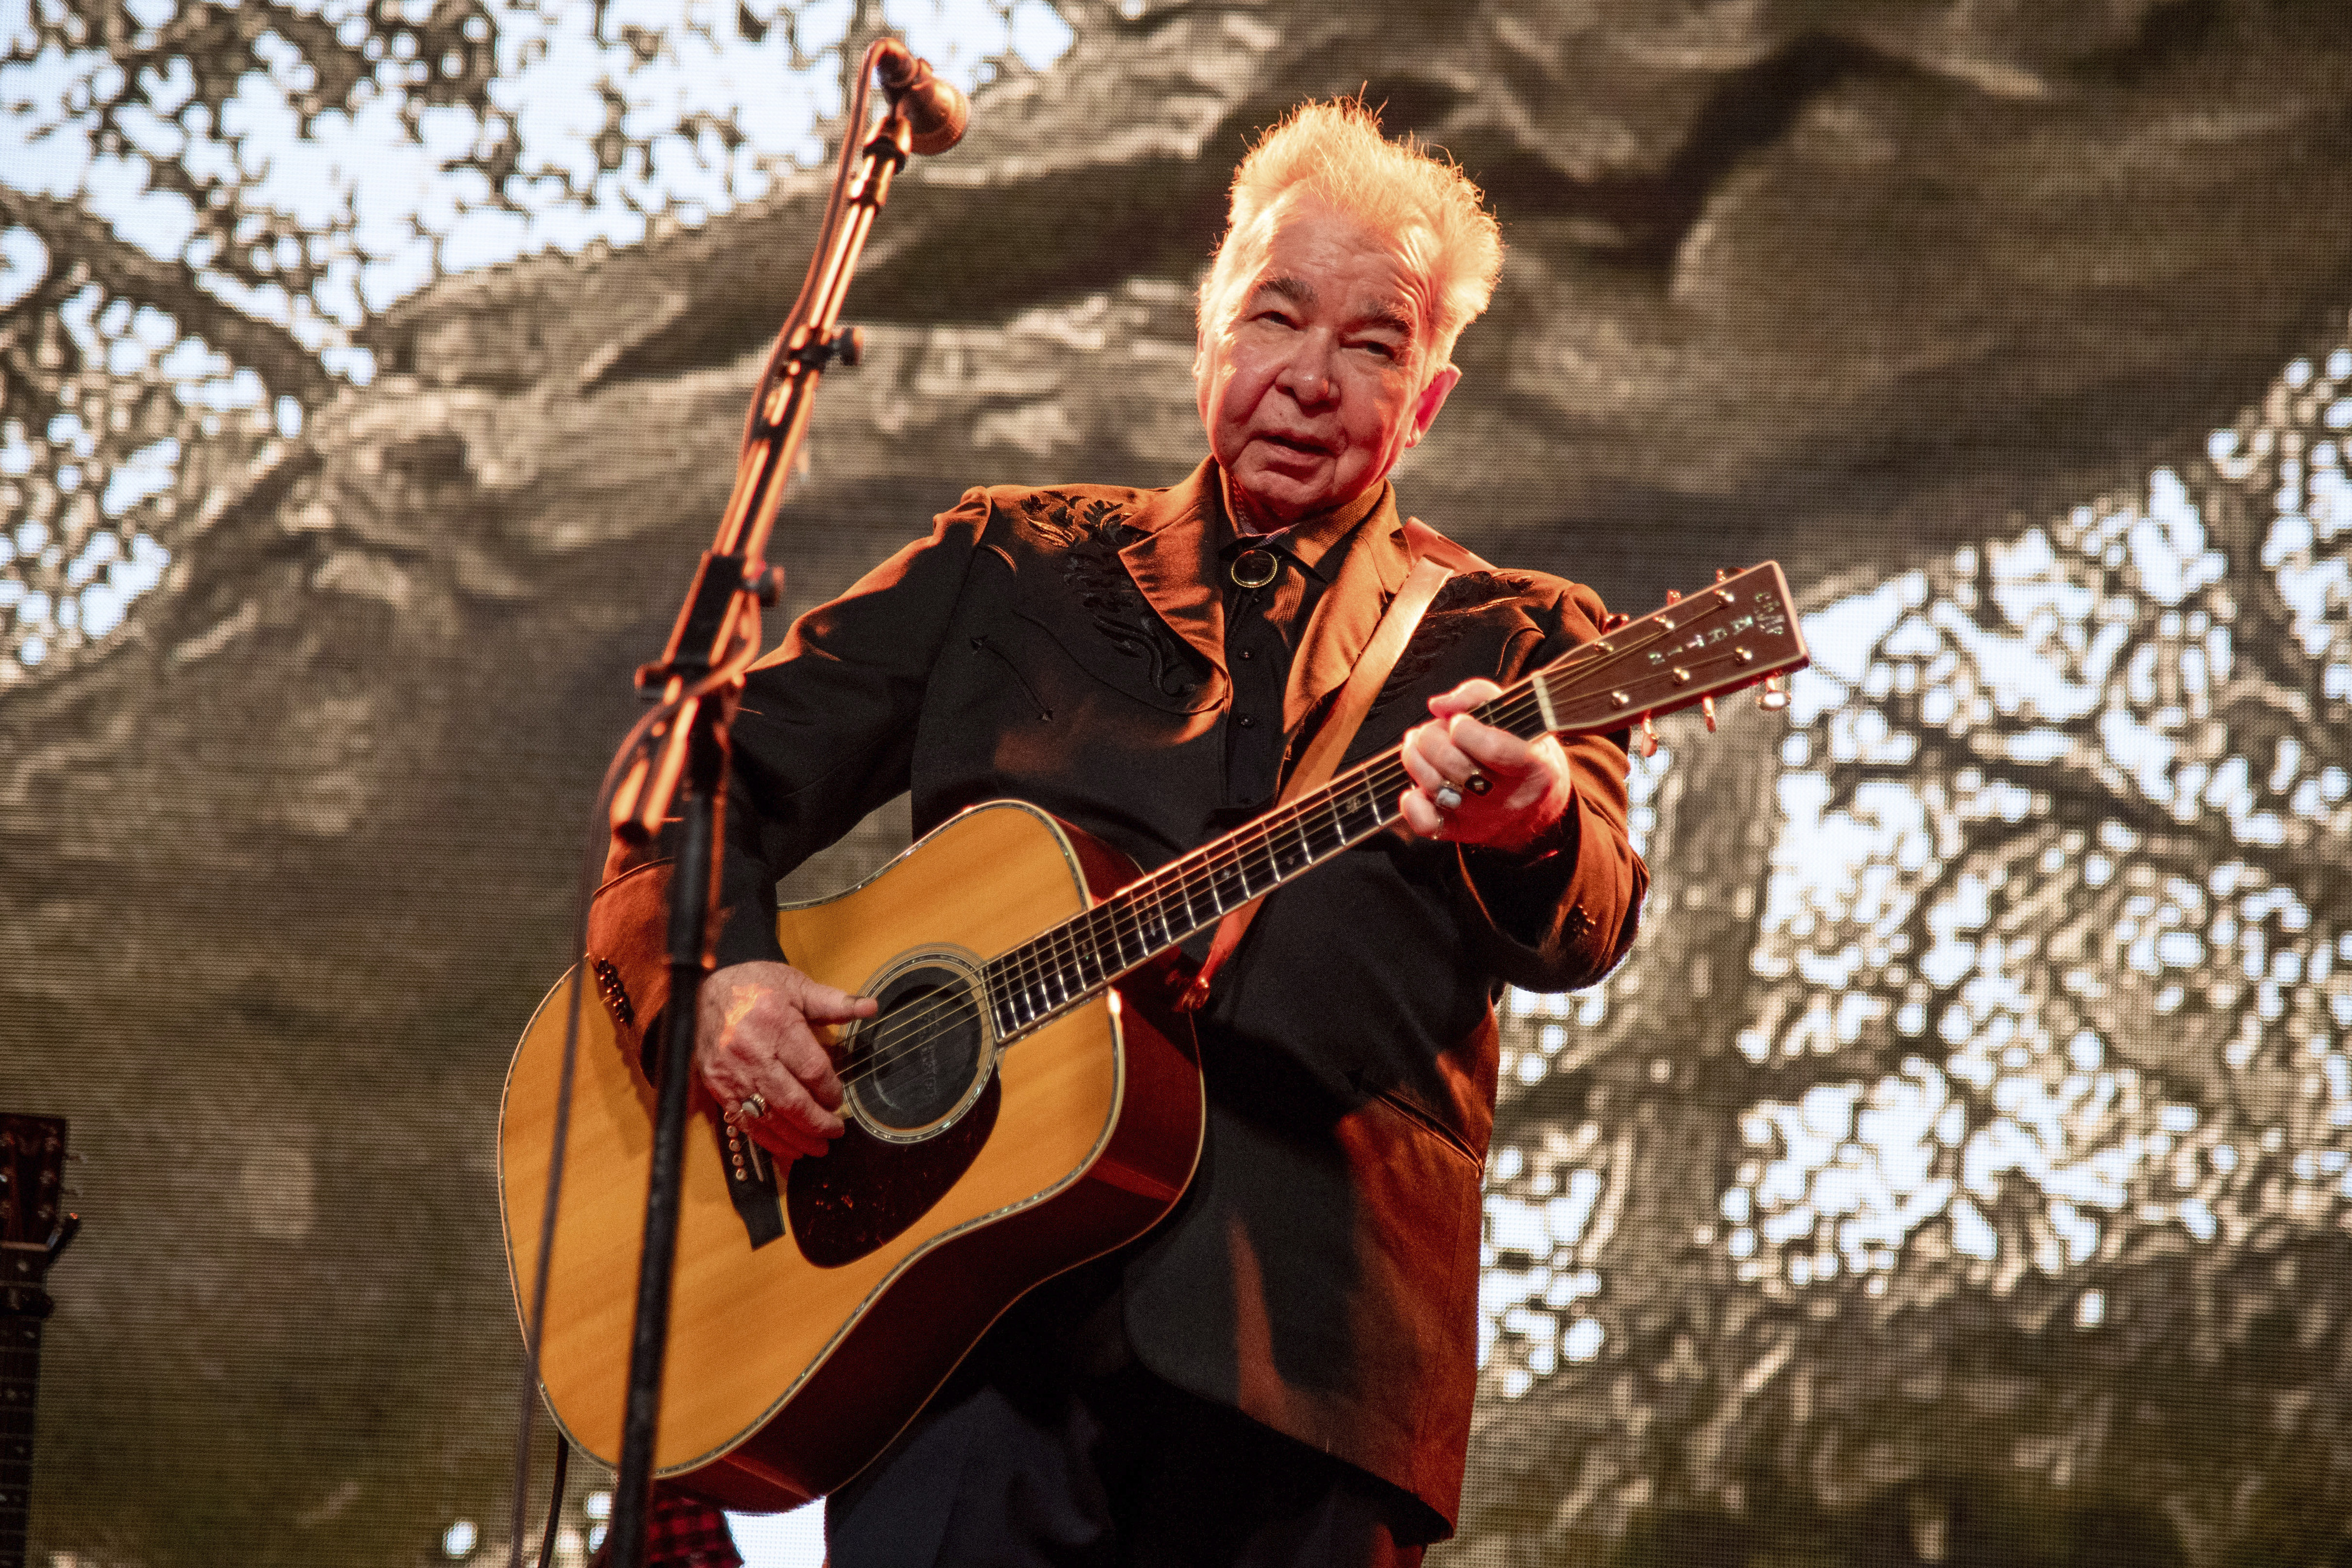 John Prine performs at the Bonnaroo Music and Arts Festival in Manchester, Tenn. on June 15, 2019.